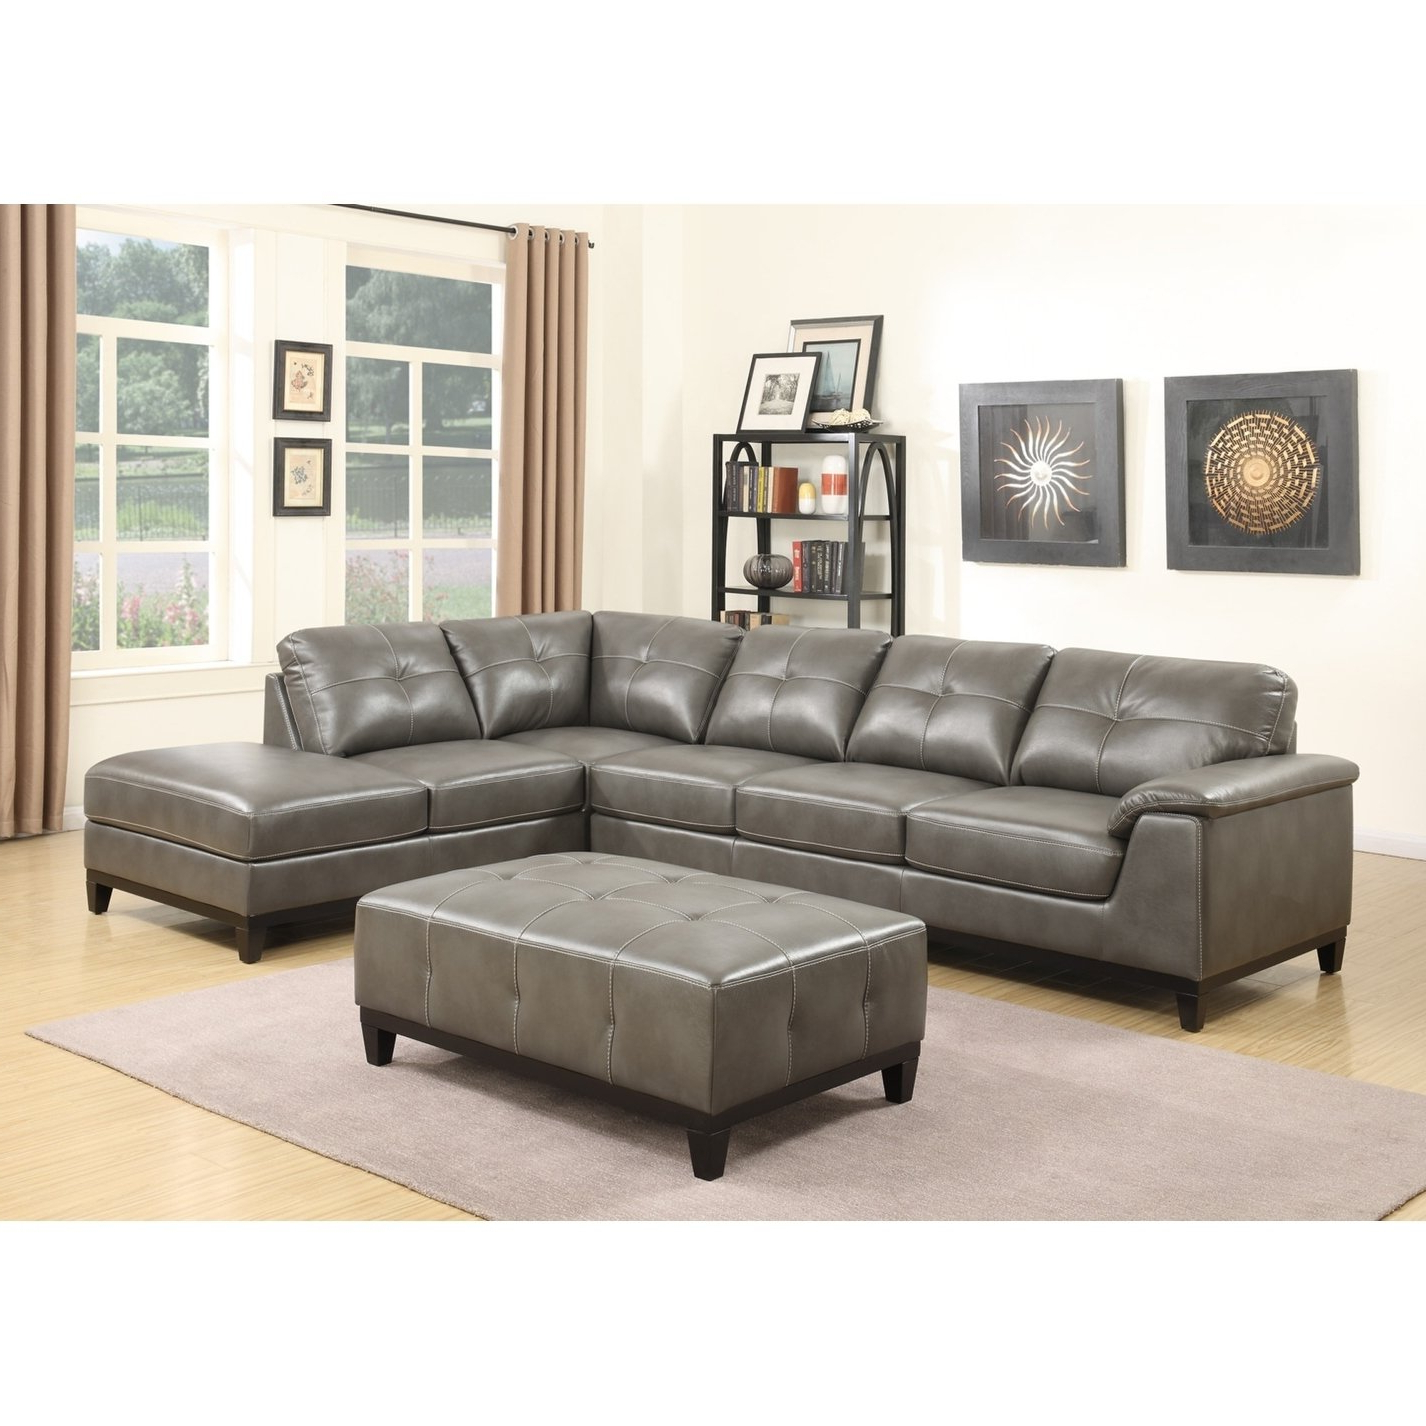 Shop Copper Grove Kinglake 2 Piece Sectional And Ottoman – On Sale Inside Fashionable Haven 3 Piece Sectionals (View 19 of 20)